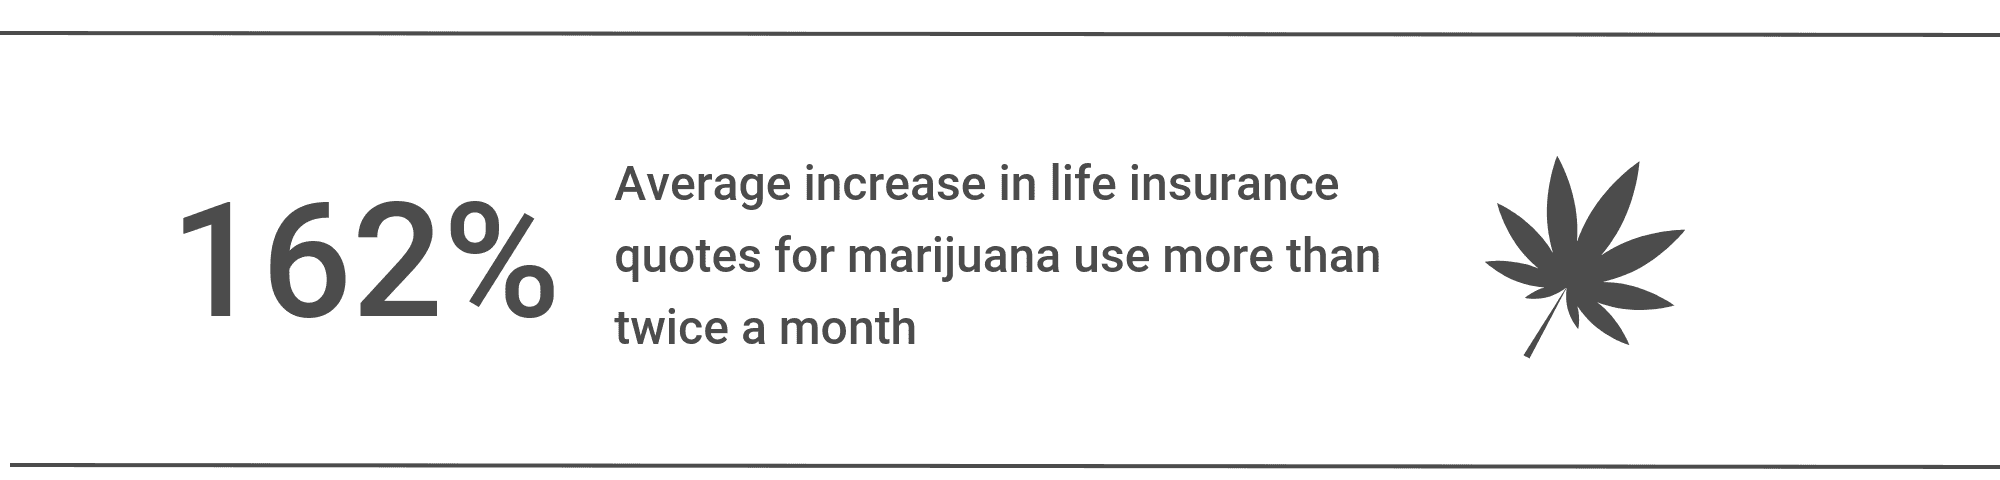 Average life insurance quote increase for marijuana use